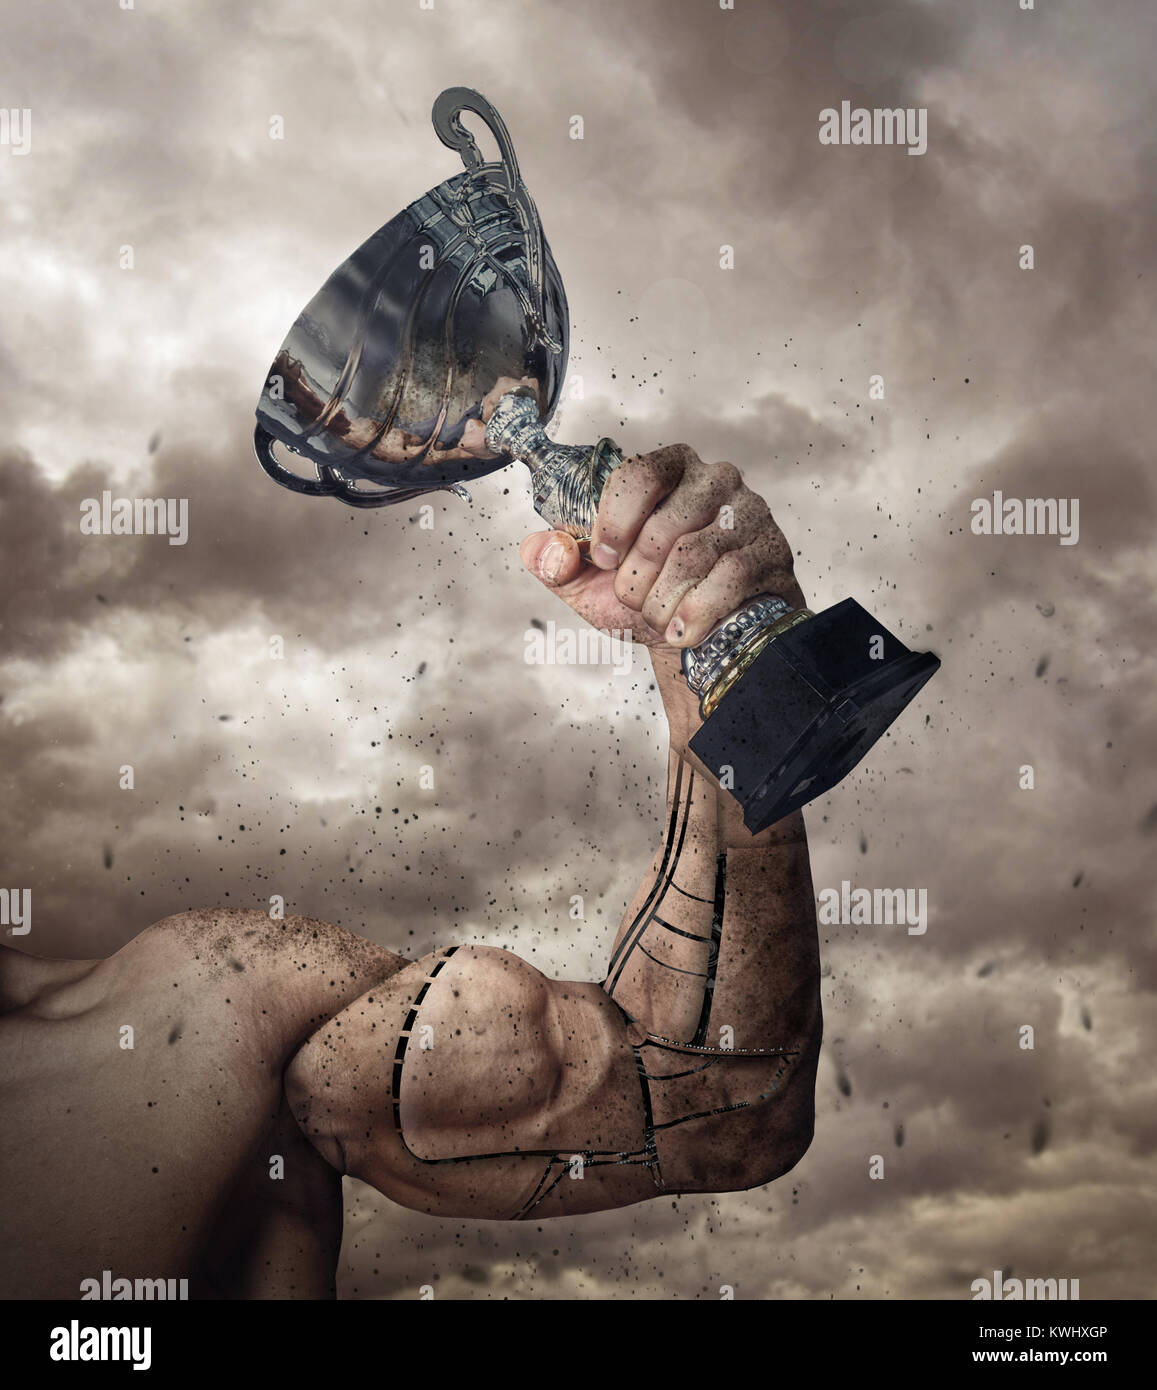 Human arm prosthesis with winner cup. - Stock Image